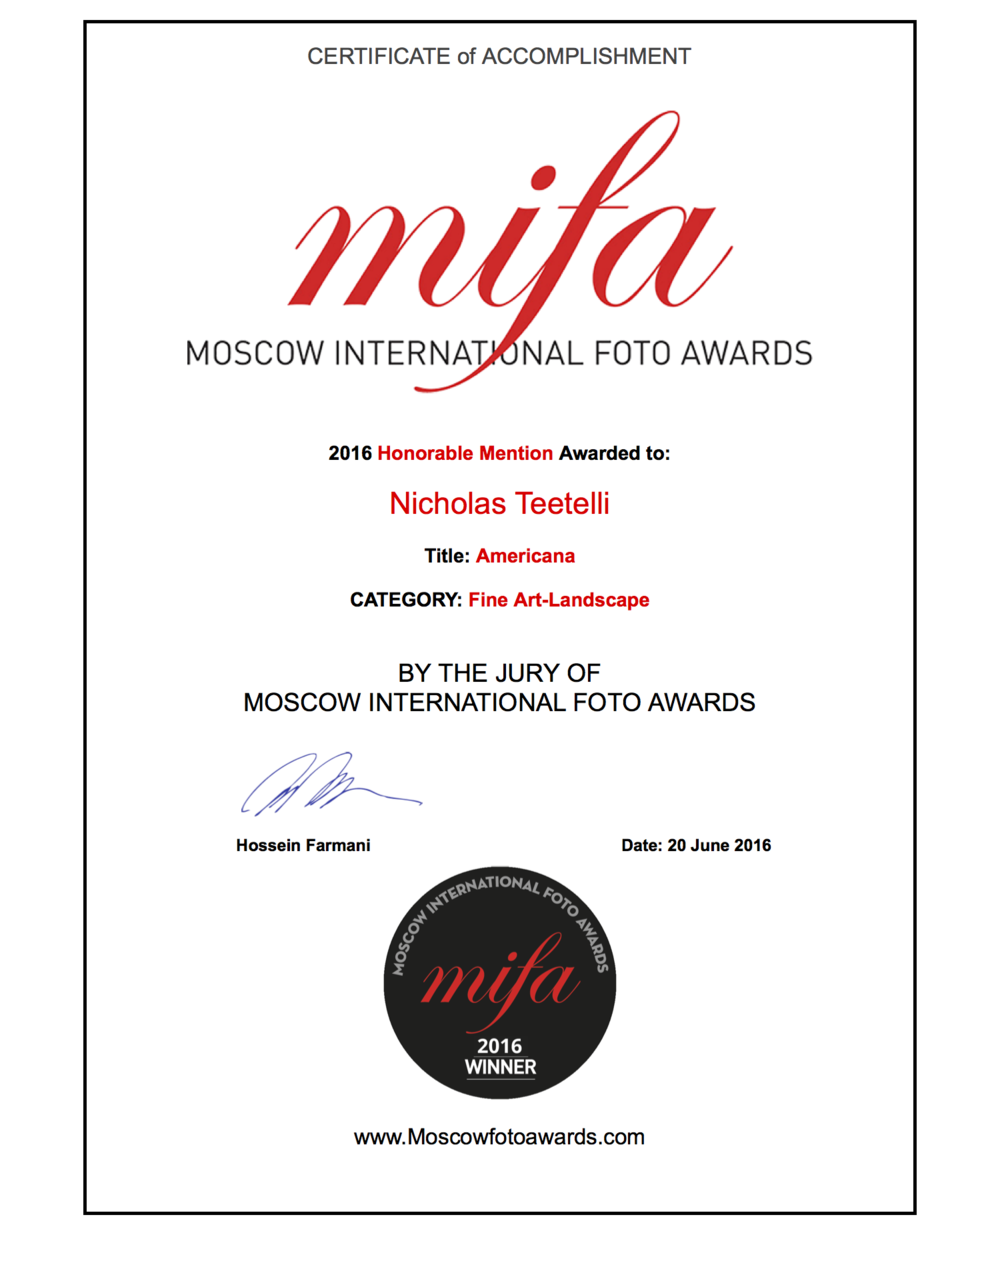 2016-06 Moscow International Foto Awards - MIFA 2016 - Americana Series, Honorable Mention.png